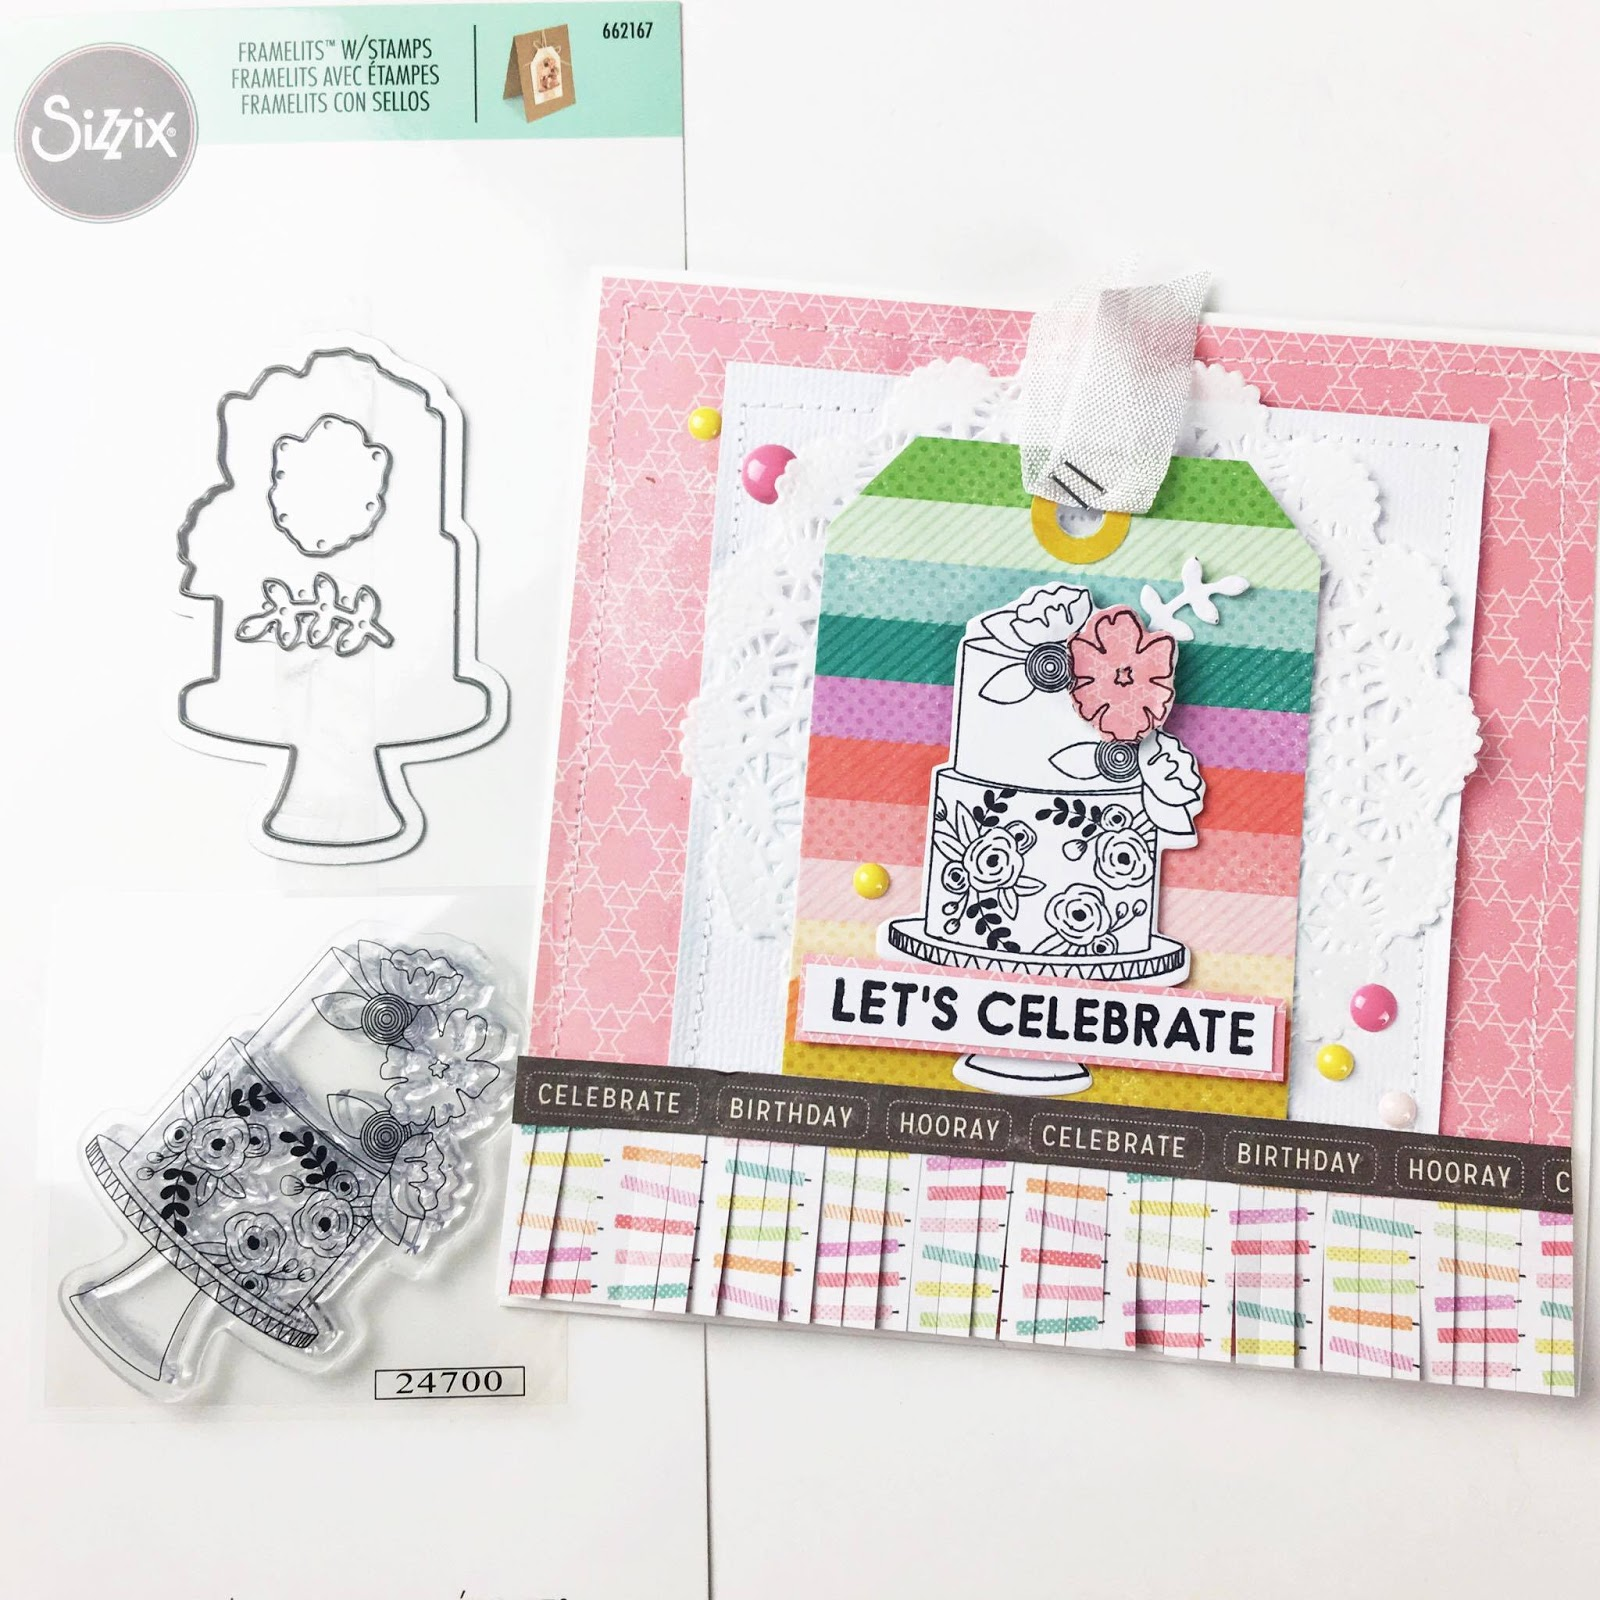 Let s Celebrate a birthday card featuring new Sizzix stamp & set